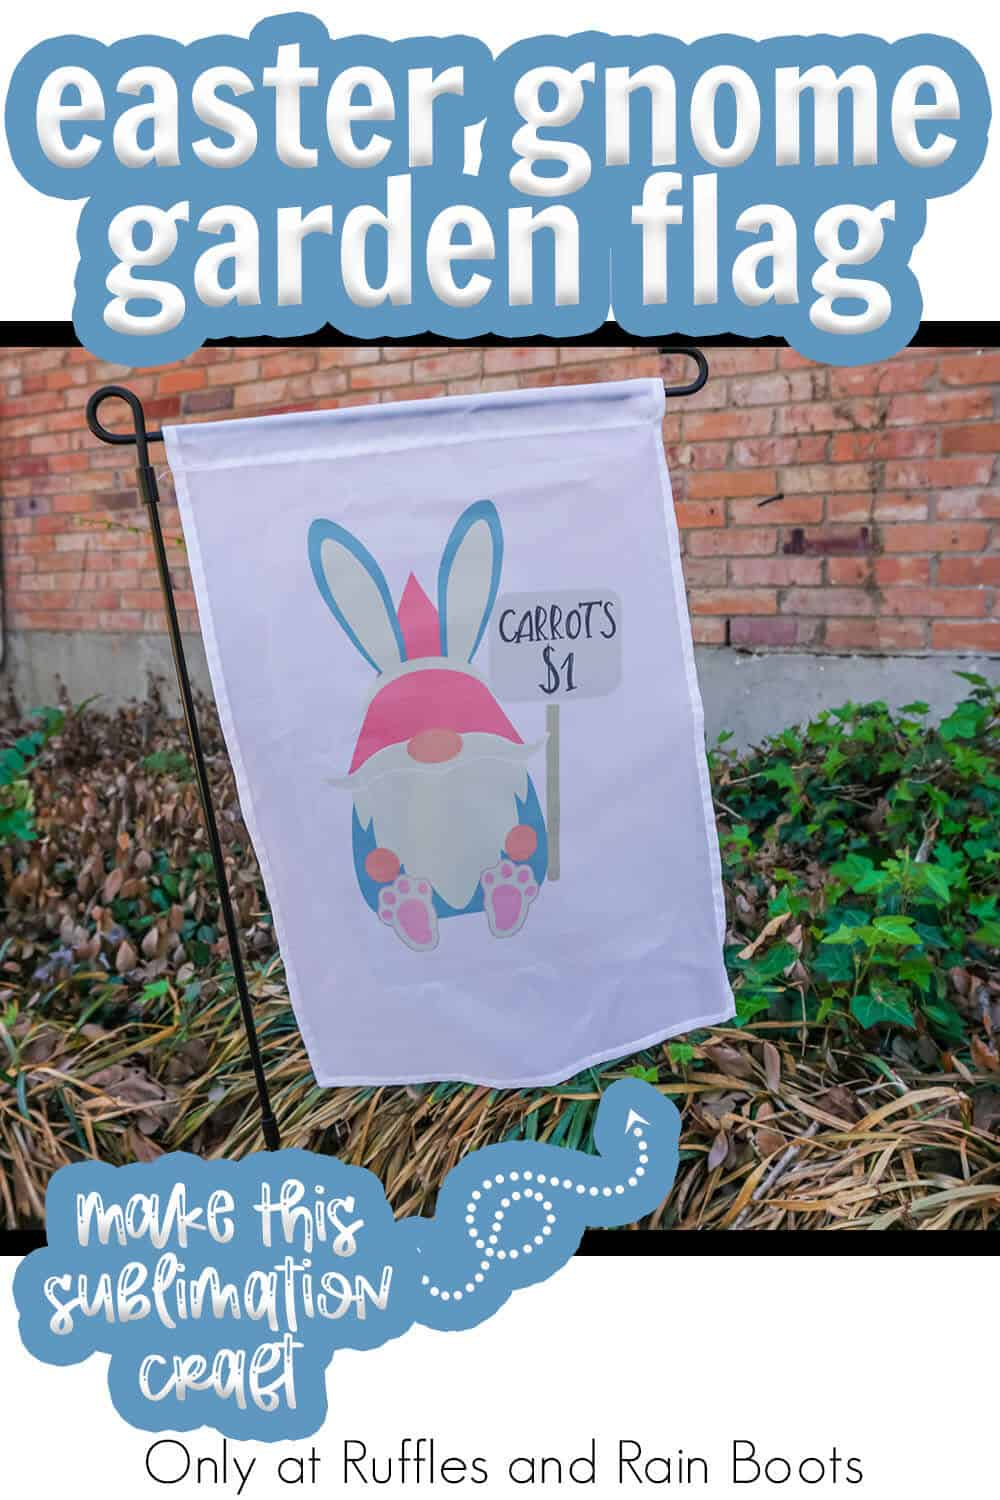 diy sublimation gnome garden flag for easter with text which reads easter gnome garden flag make this sublimation craft